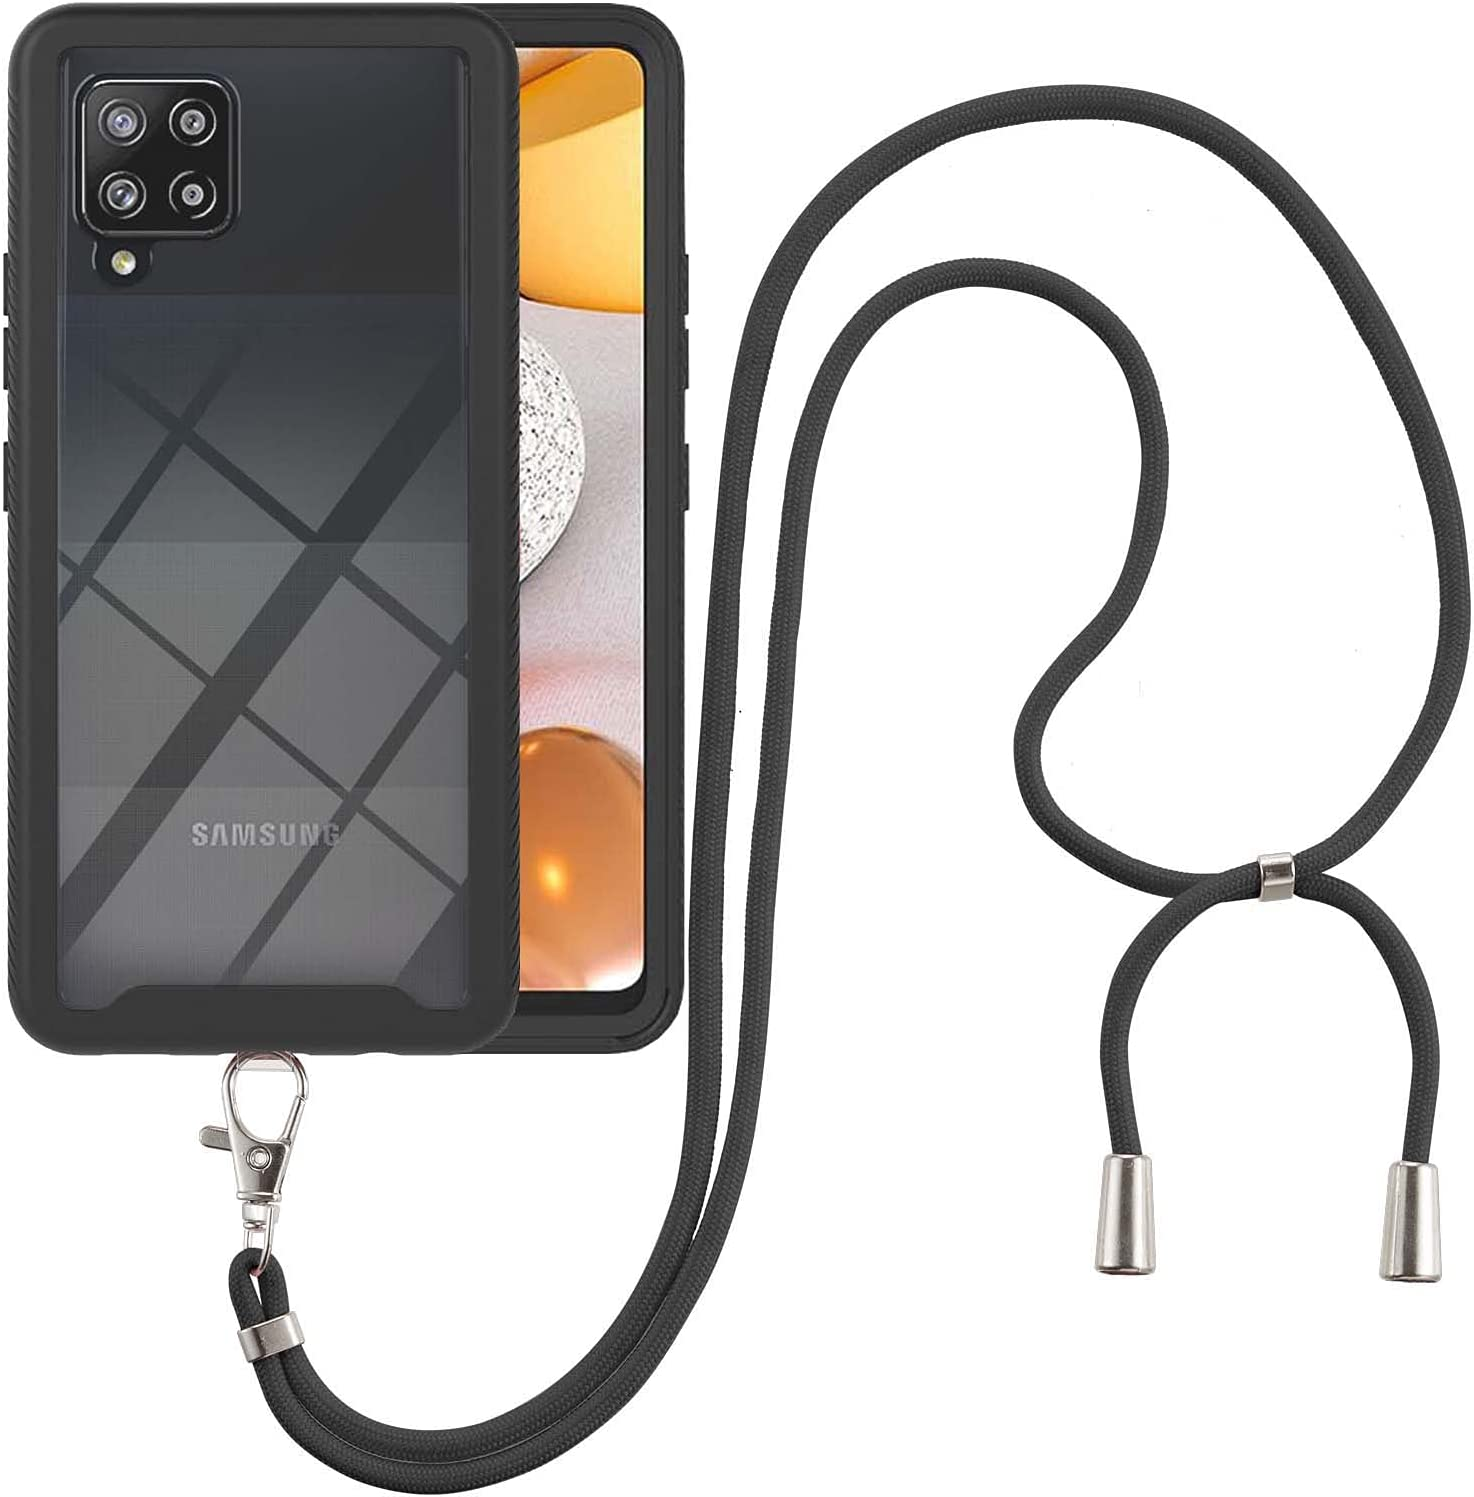 Samsung A42 5G Case, EabHulie Transparent Back No-Slip Bumper with Adjustable Crossbody Lanyard Strap Case, Shockproof Full Body Protection Cover for Samsung Galaxy A42 5G Black